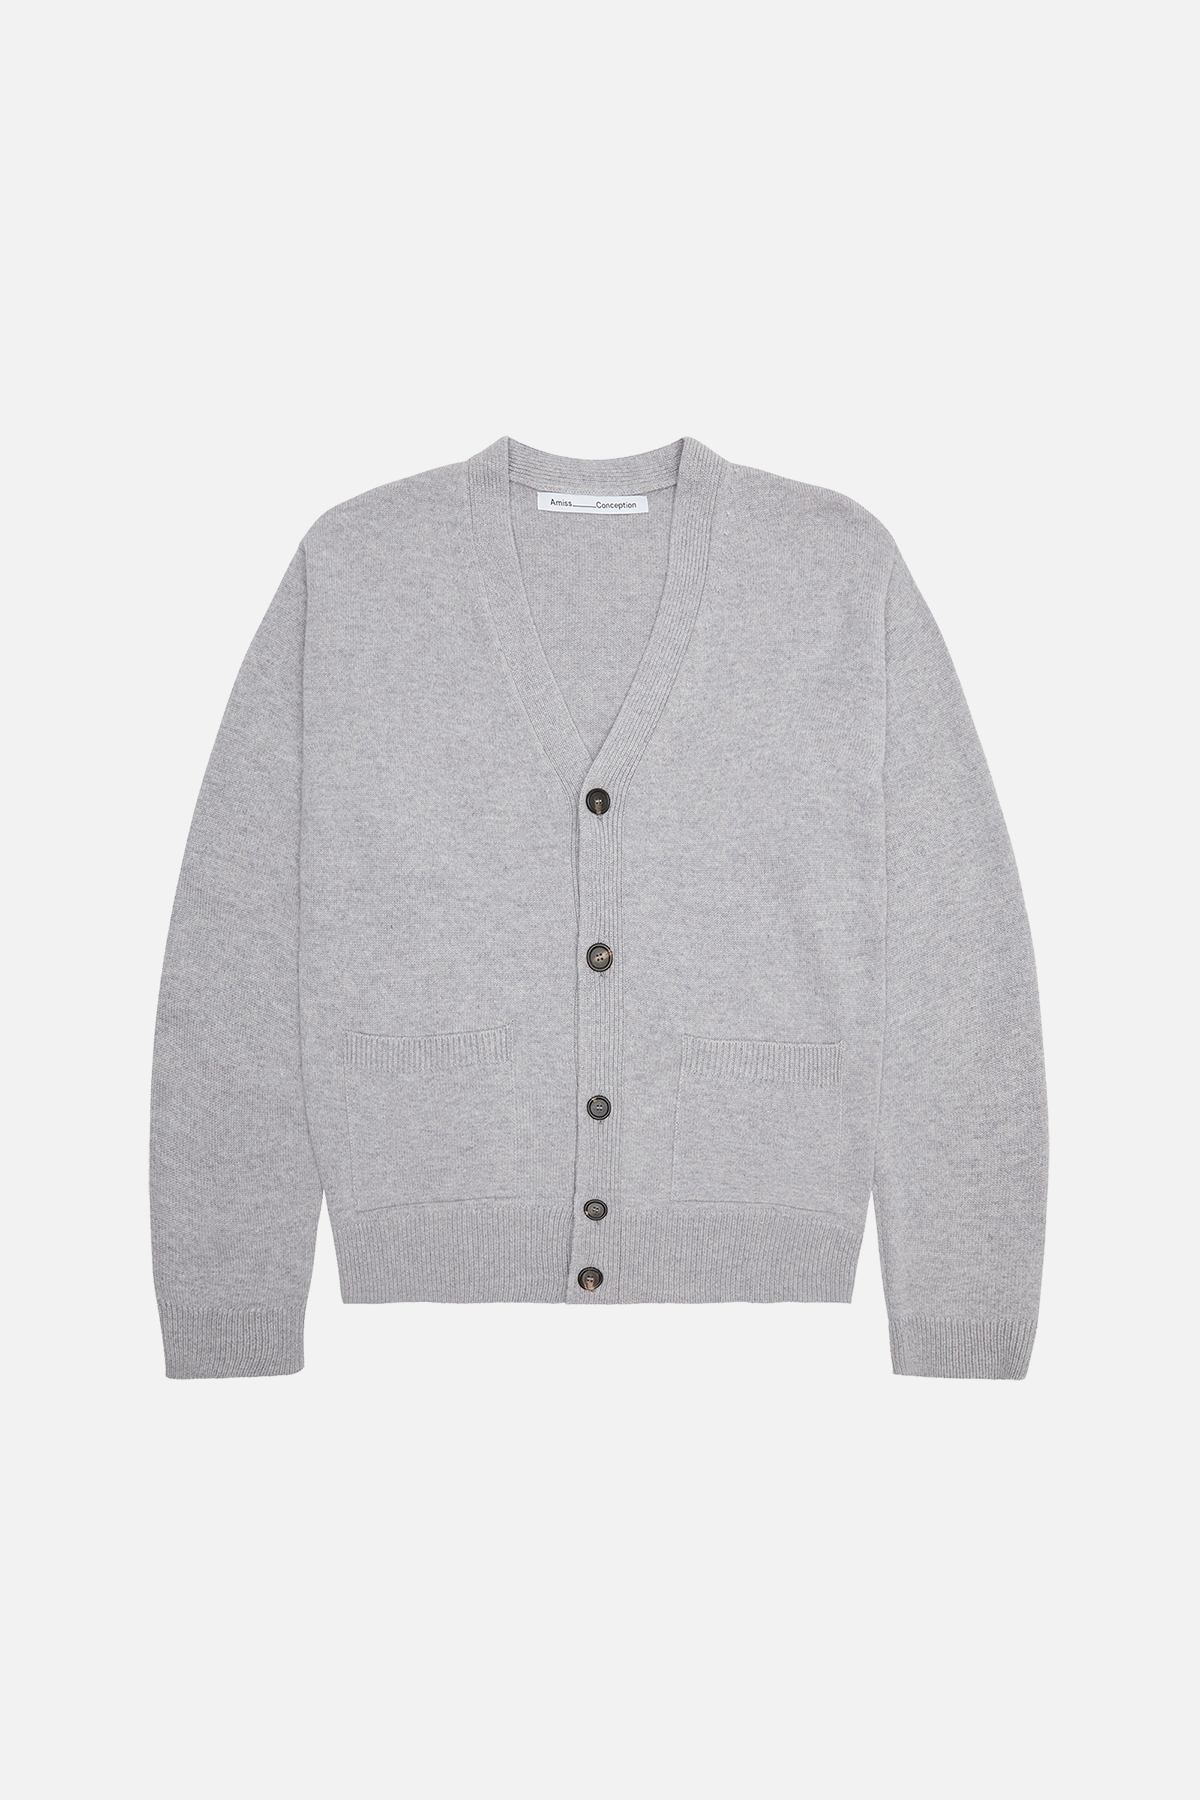 The Cardigan in Mist